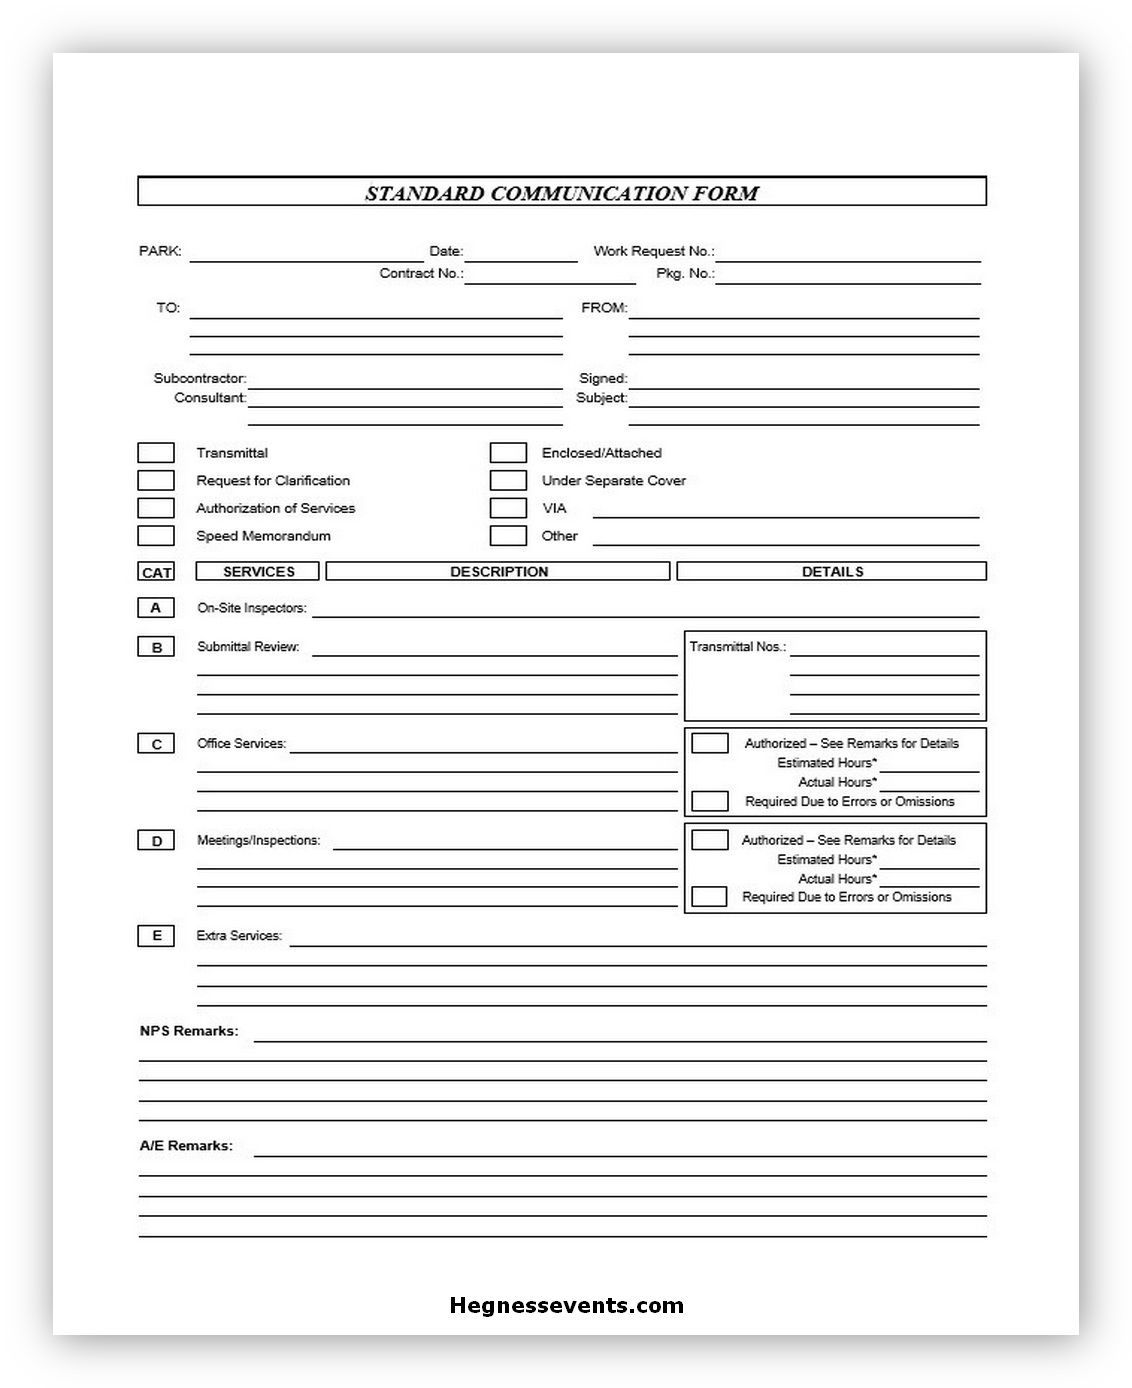 Communication Form in DOC